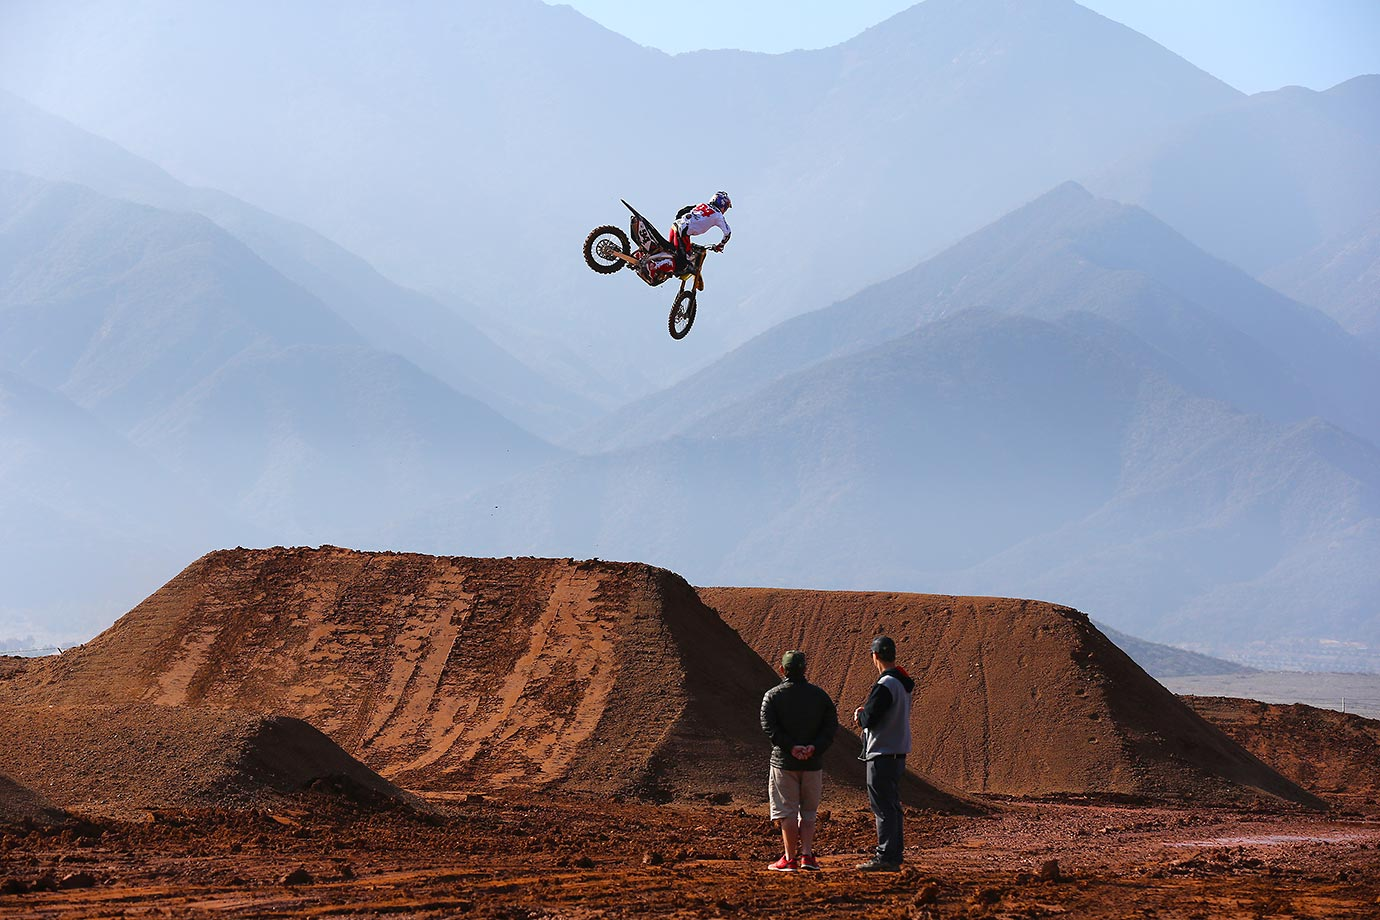 Roczen gets some big air on the team's practice track in Corona, Calif.